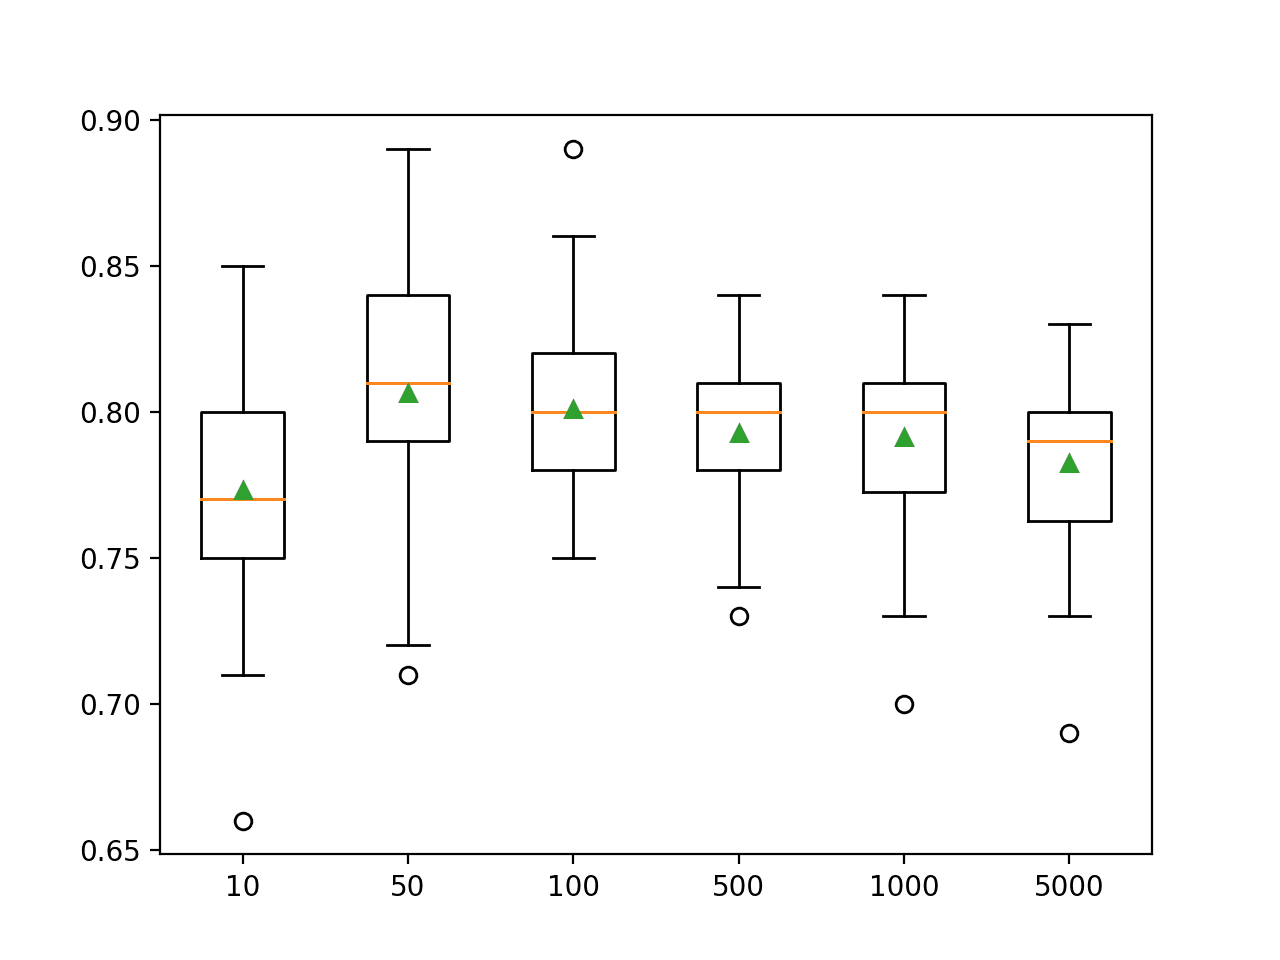 Box Plot of AdaBoost Ensemble Size vs. Classification Accuracy